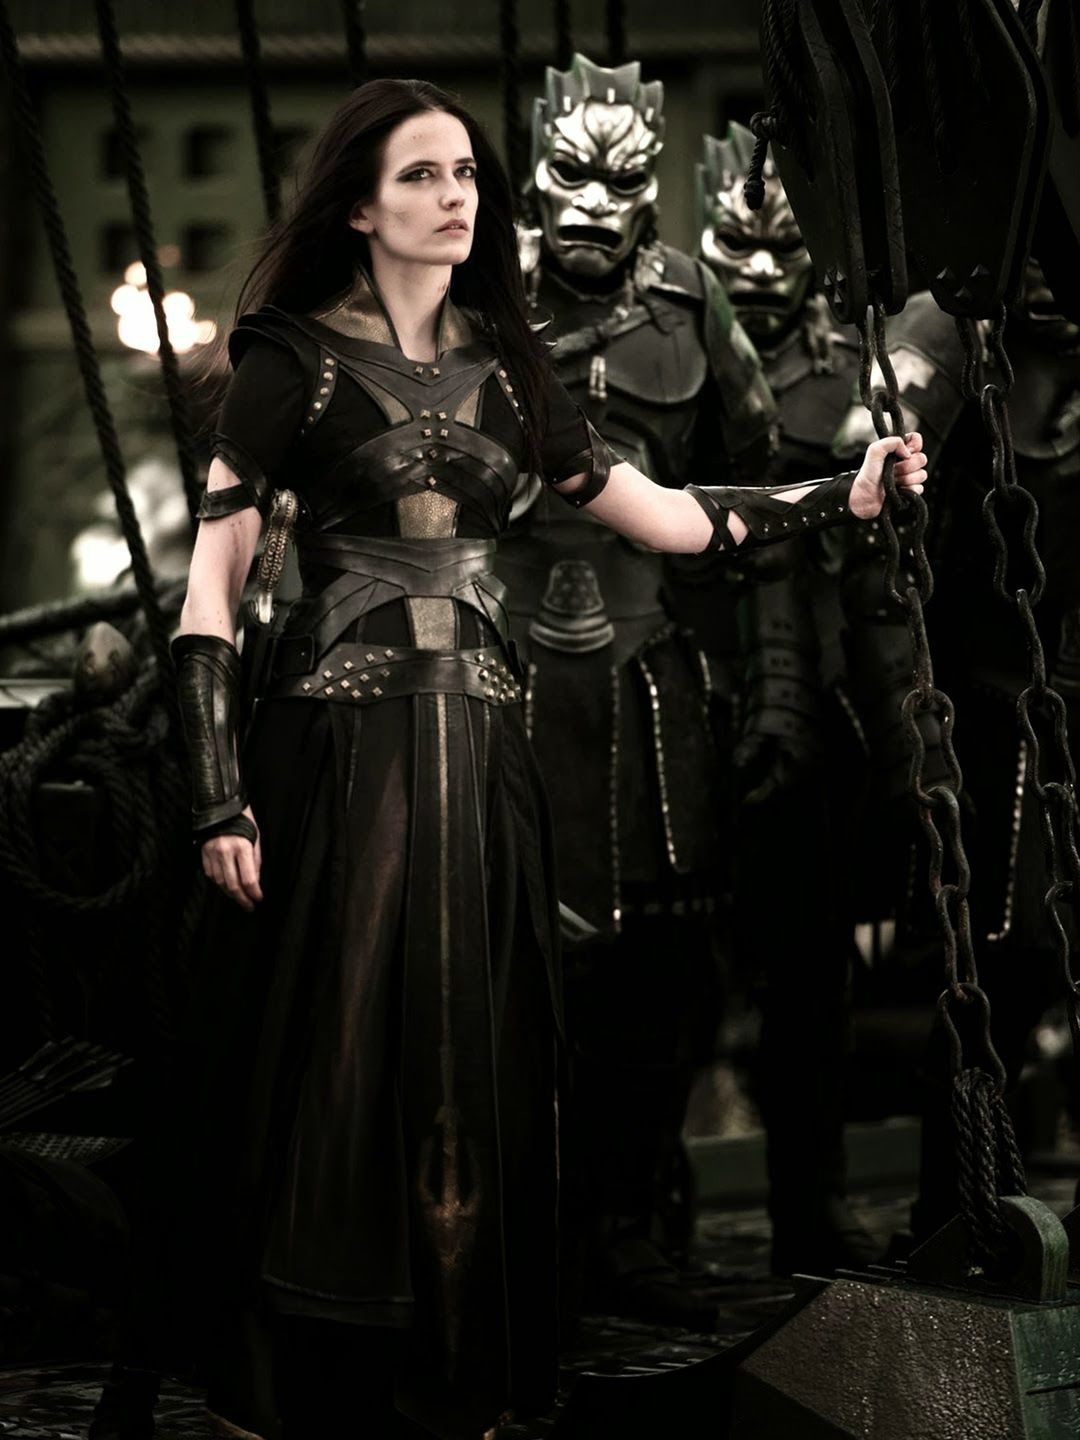 eva green in 300 rise of an empire is couture and badass